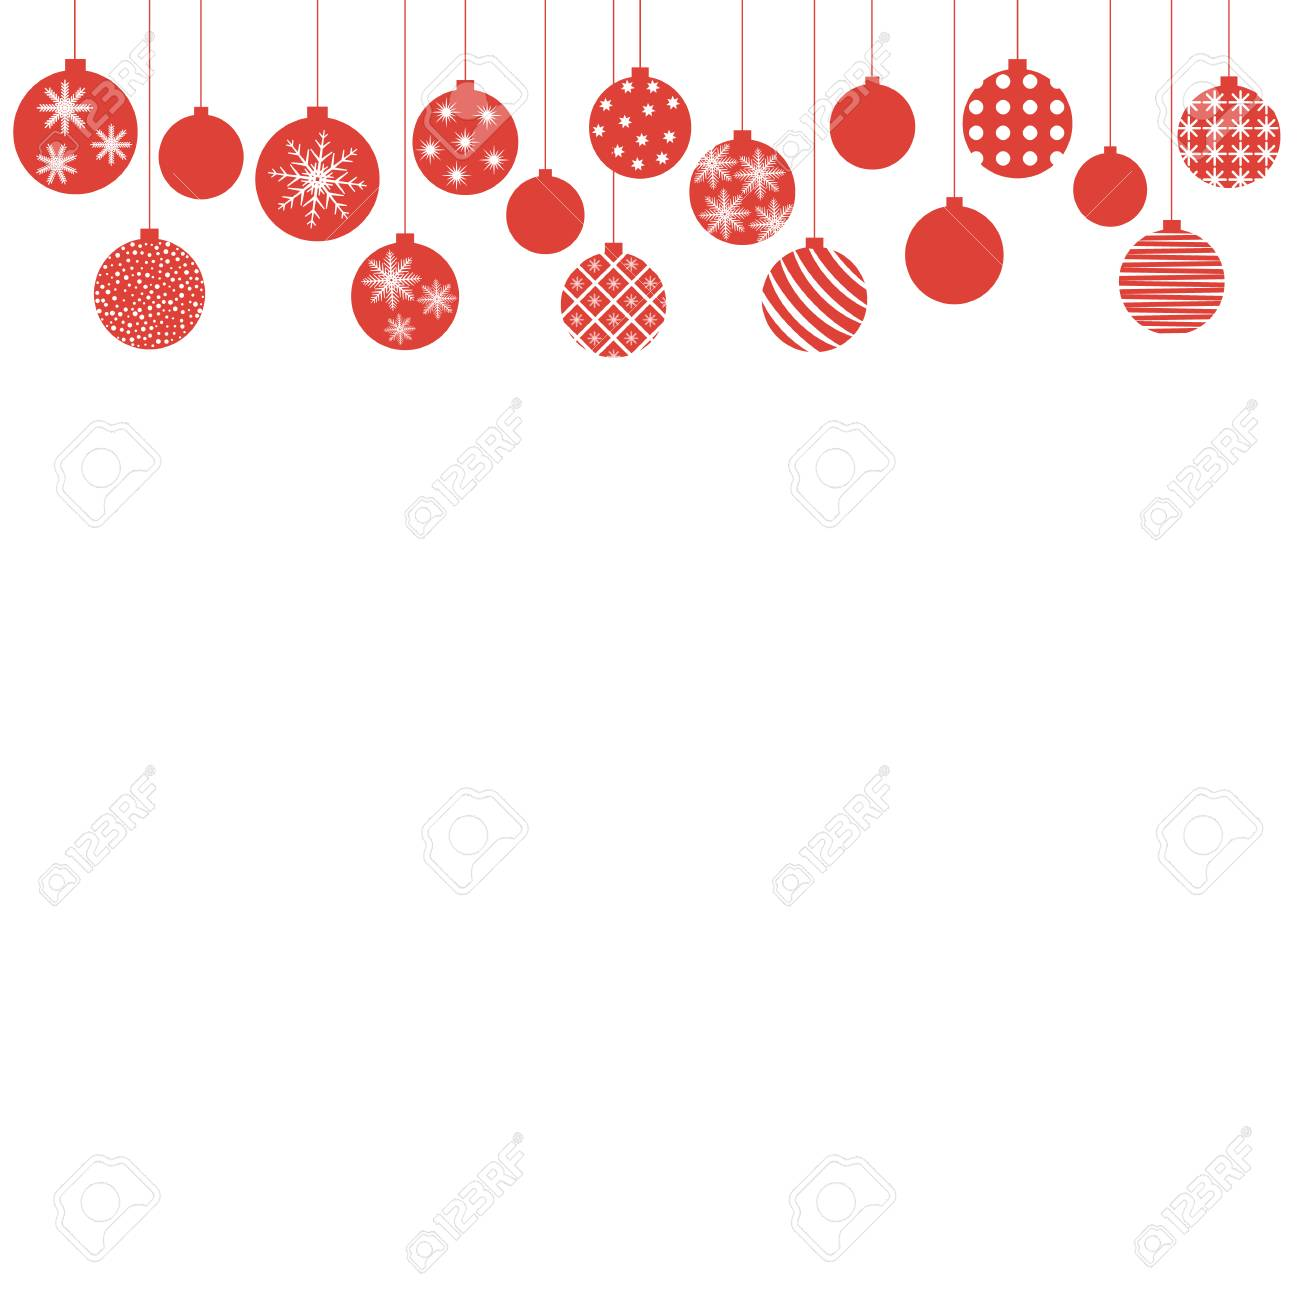 Christmas Red Balls Hanging From Above Design For A Holiday Invitation Card Poster